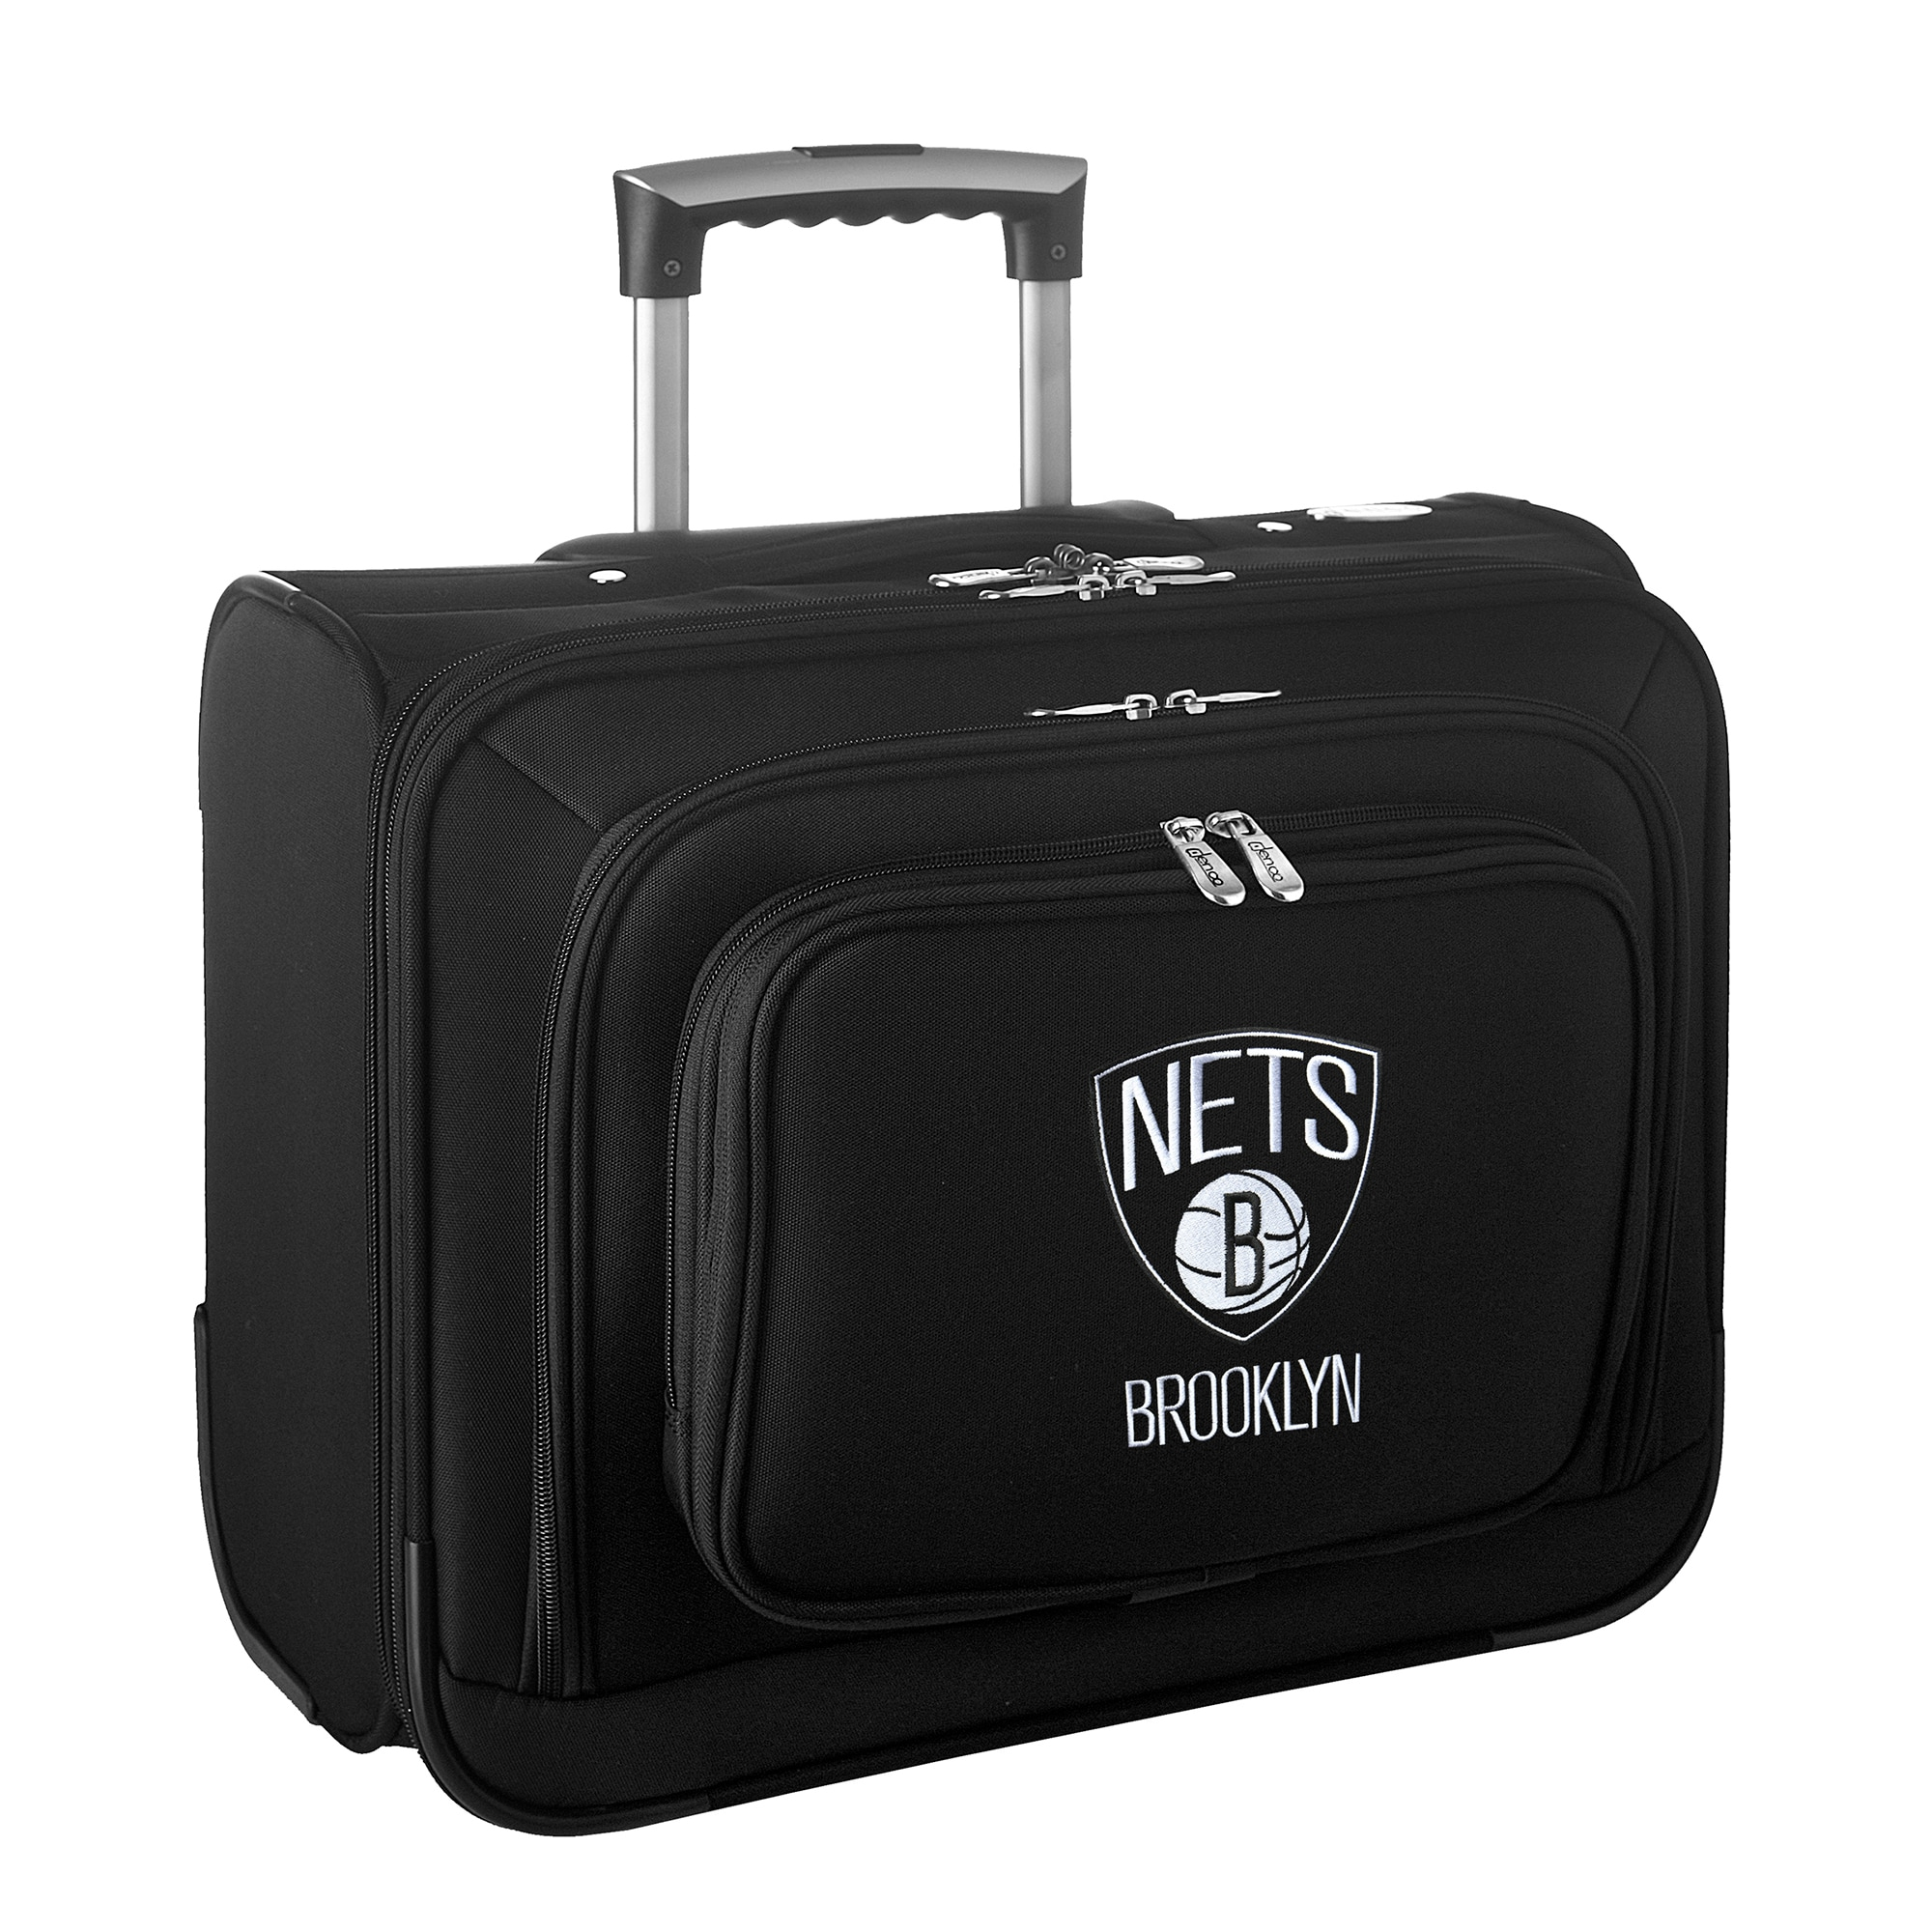 "Brooklyn Nets 14"" 2-Wheeled Laptop Overnighter Travel Case - Black"